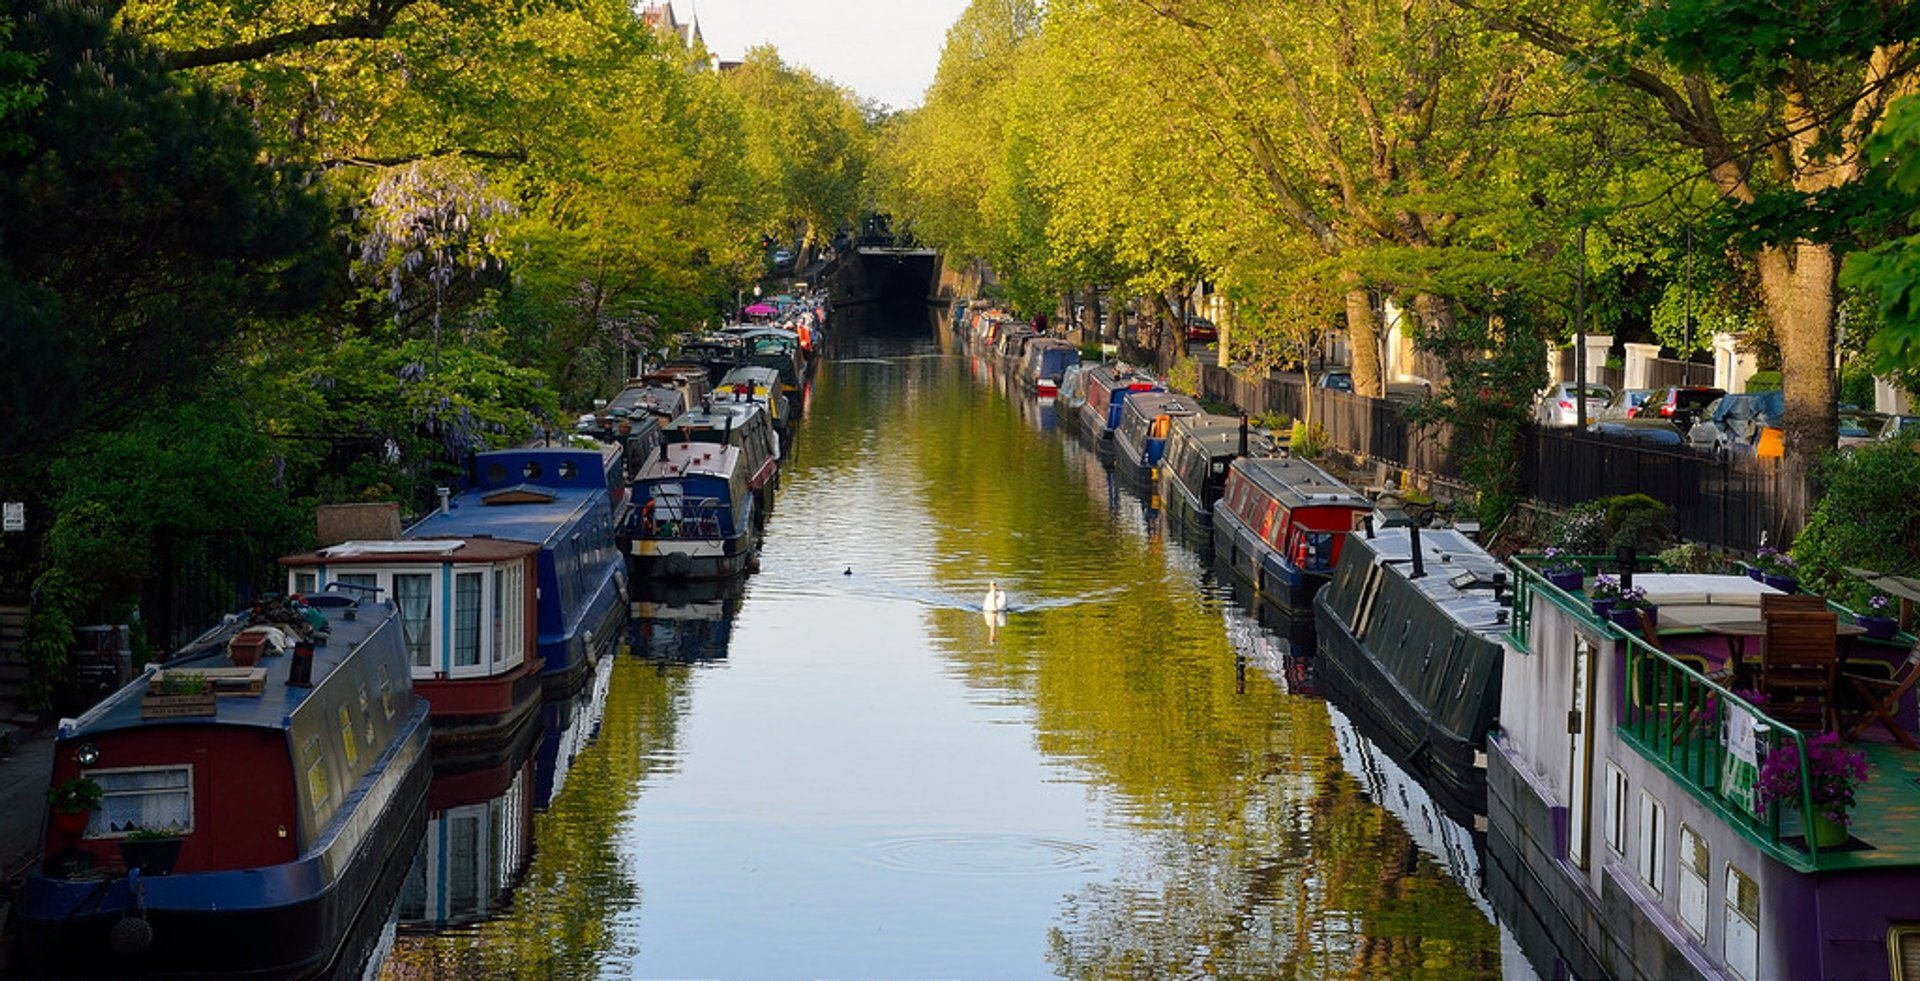 Best time to see Canalway Cavalcade in London 2020